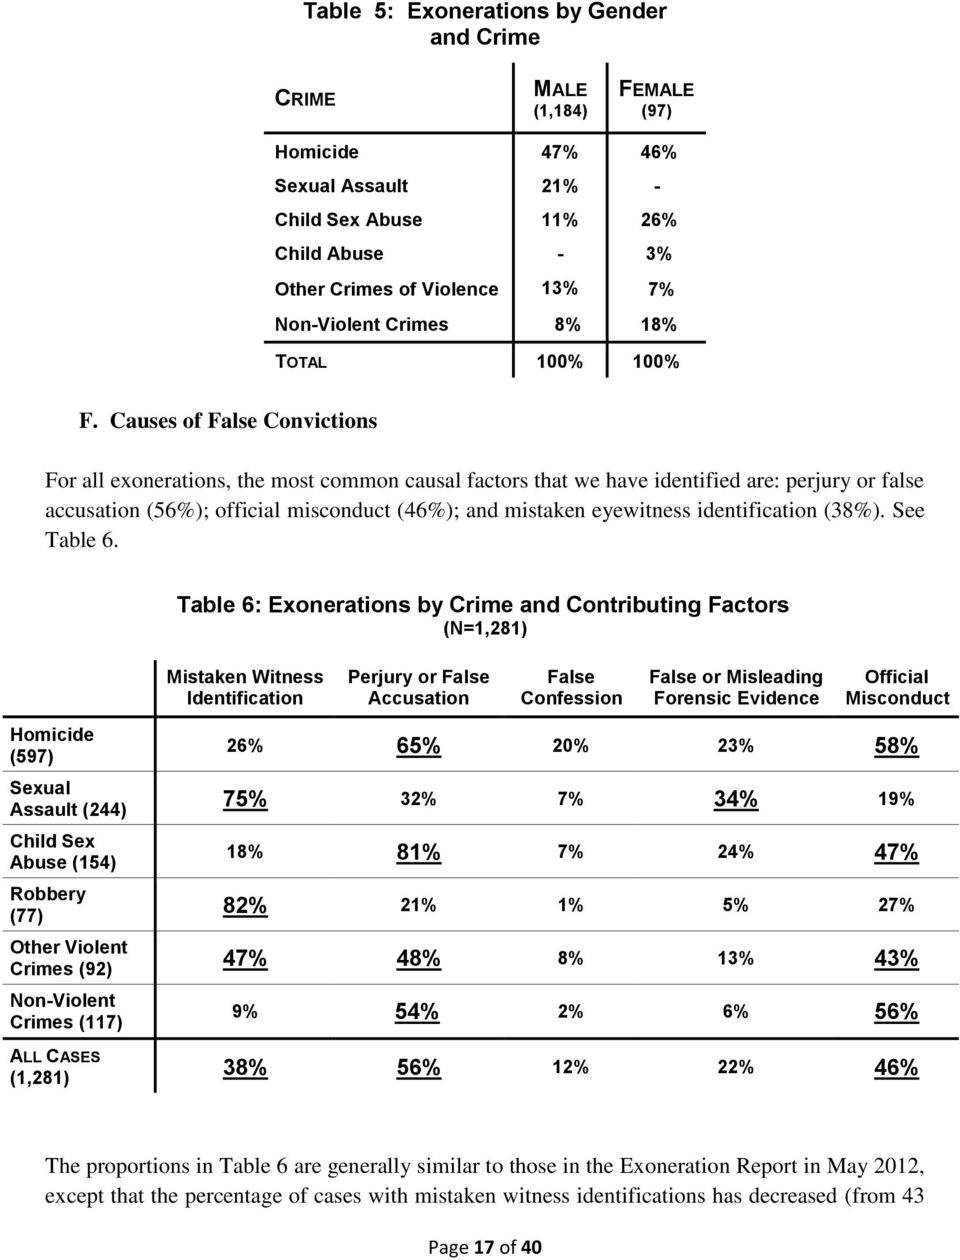 Causes of False Convictions For all exonerations, the most common causal factors that we have identified are: perjury or false accusation (56%); official misconduct (46%); and mistaken eyewitness